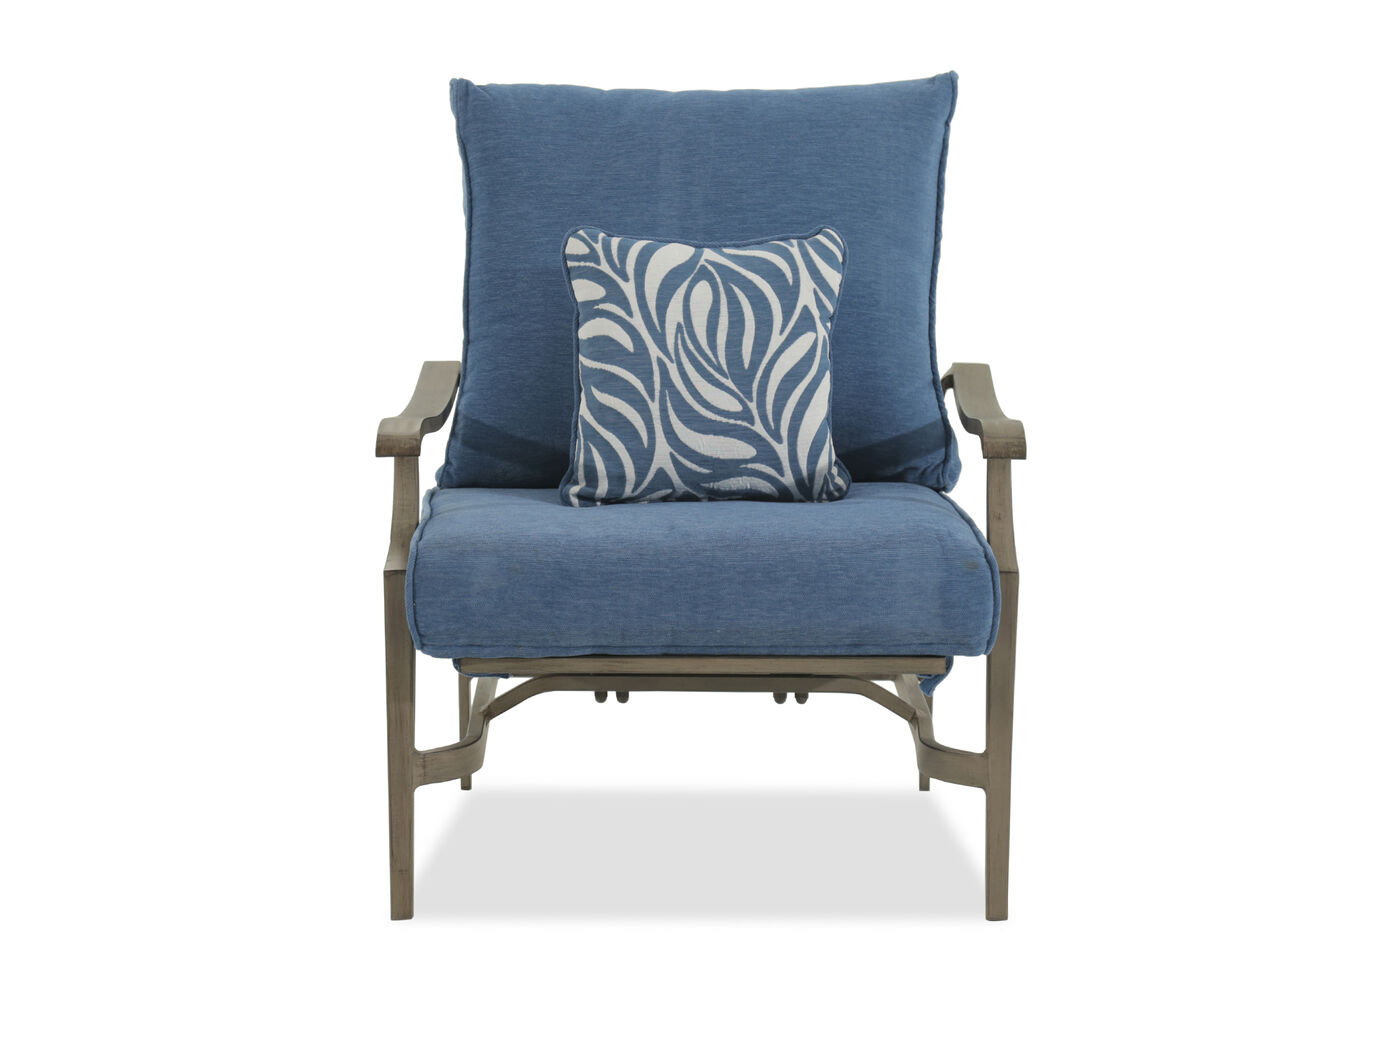 Contemporary Aluminum Lounge Chair In Blue Mathis